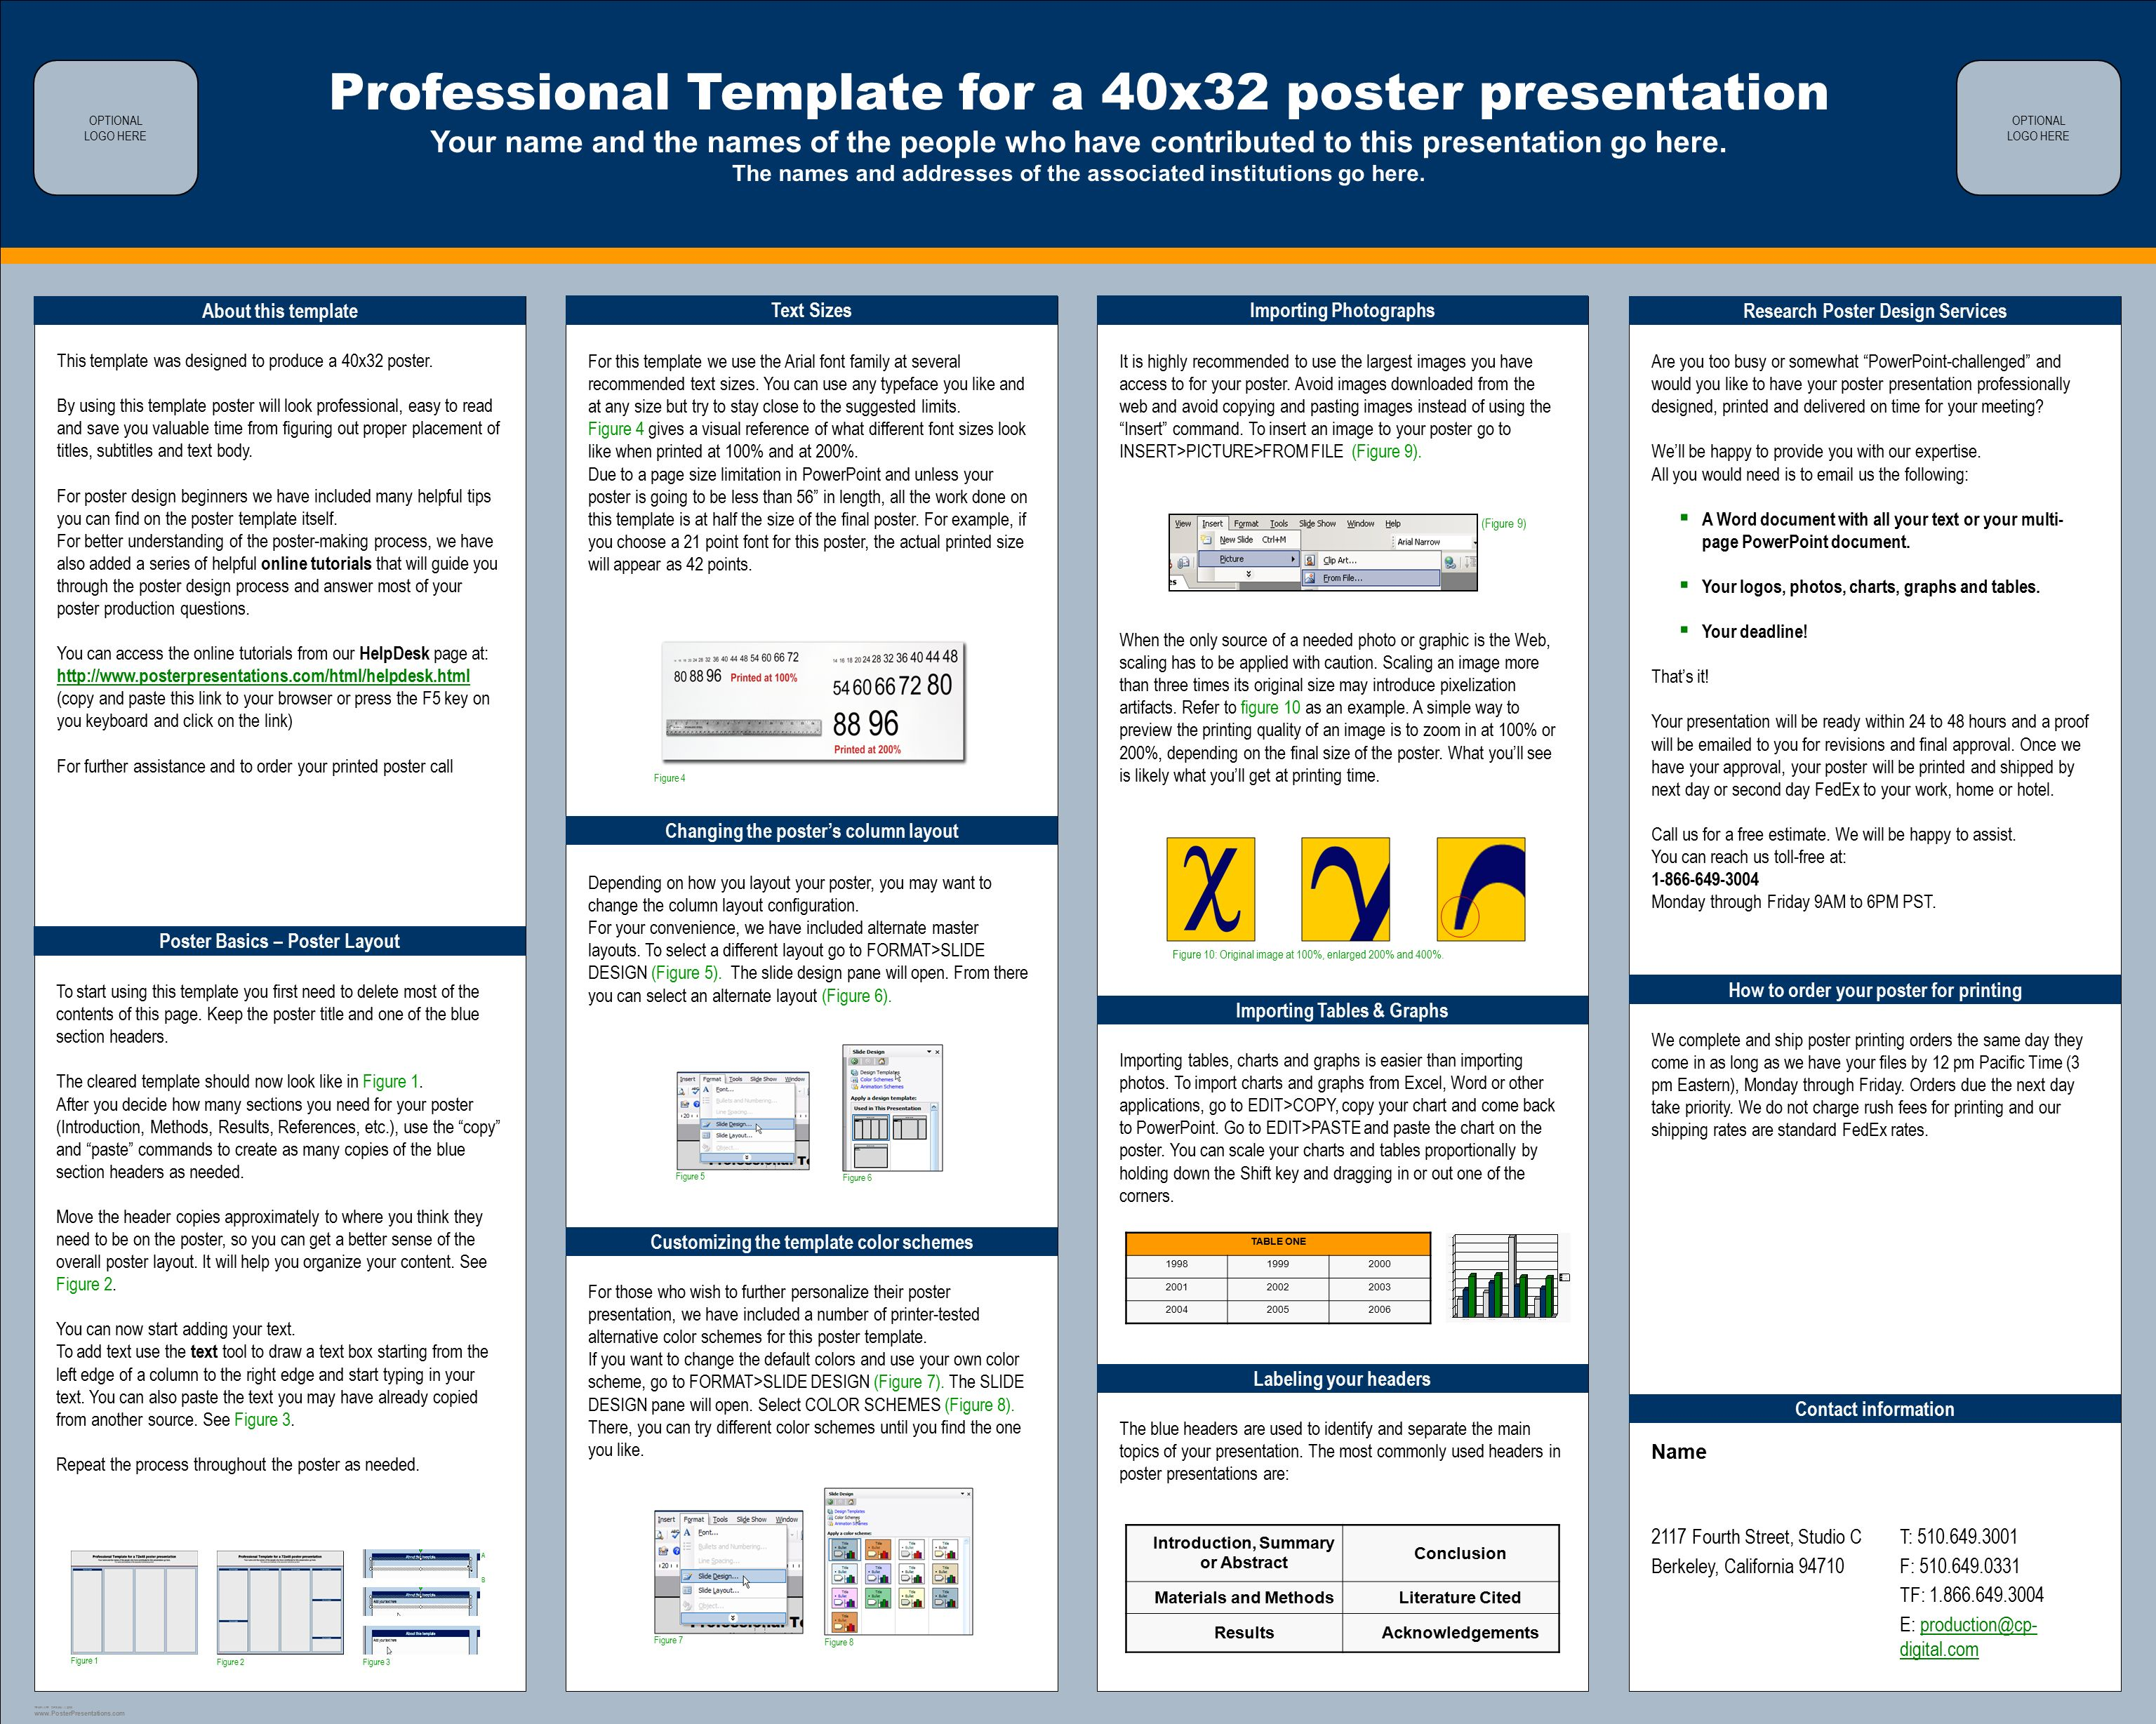 Professional template for a 40x32 poster presentation for Posterpresentations com templates